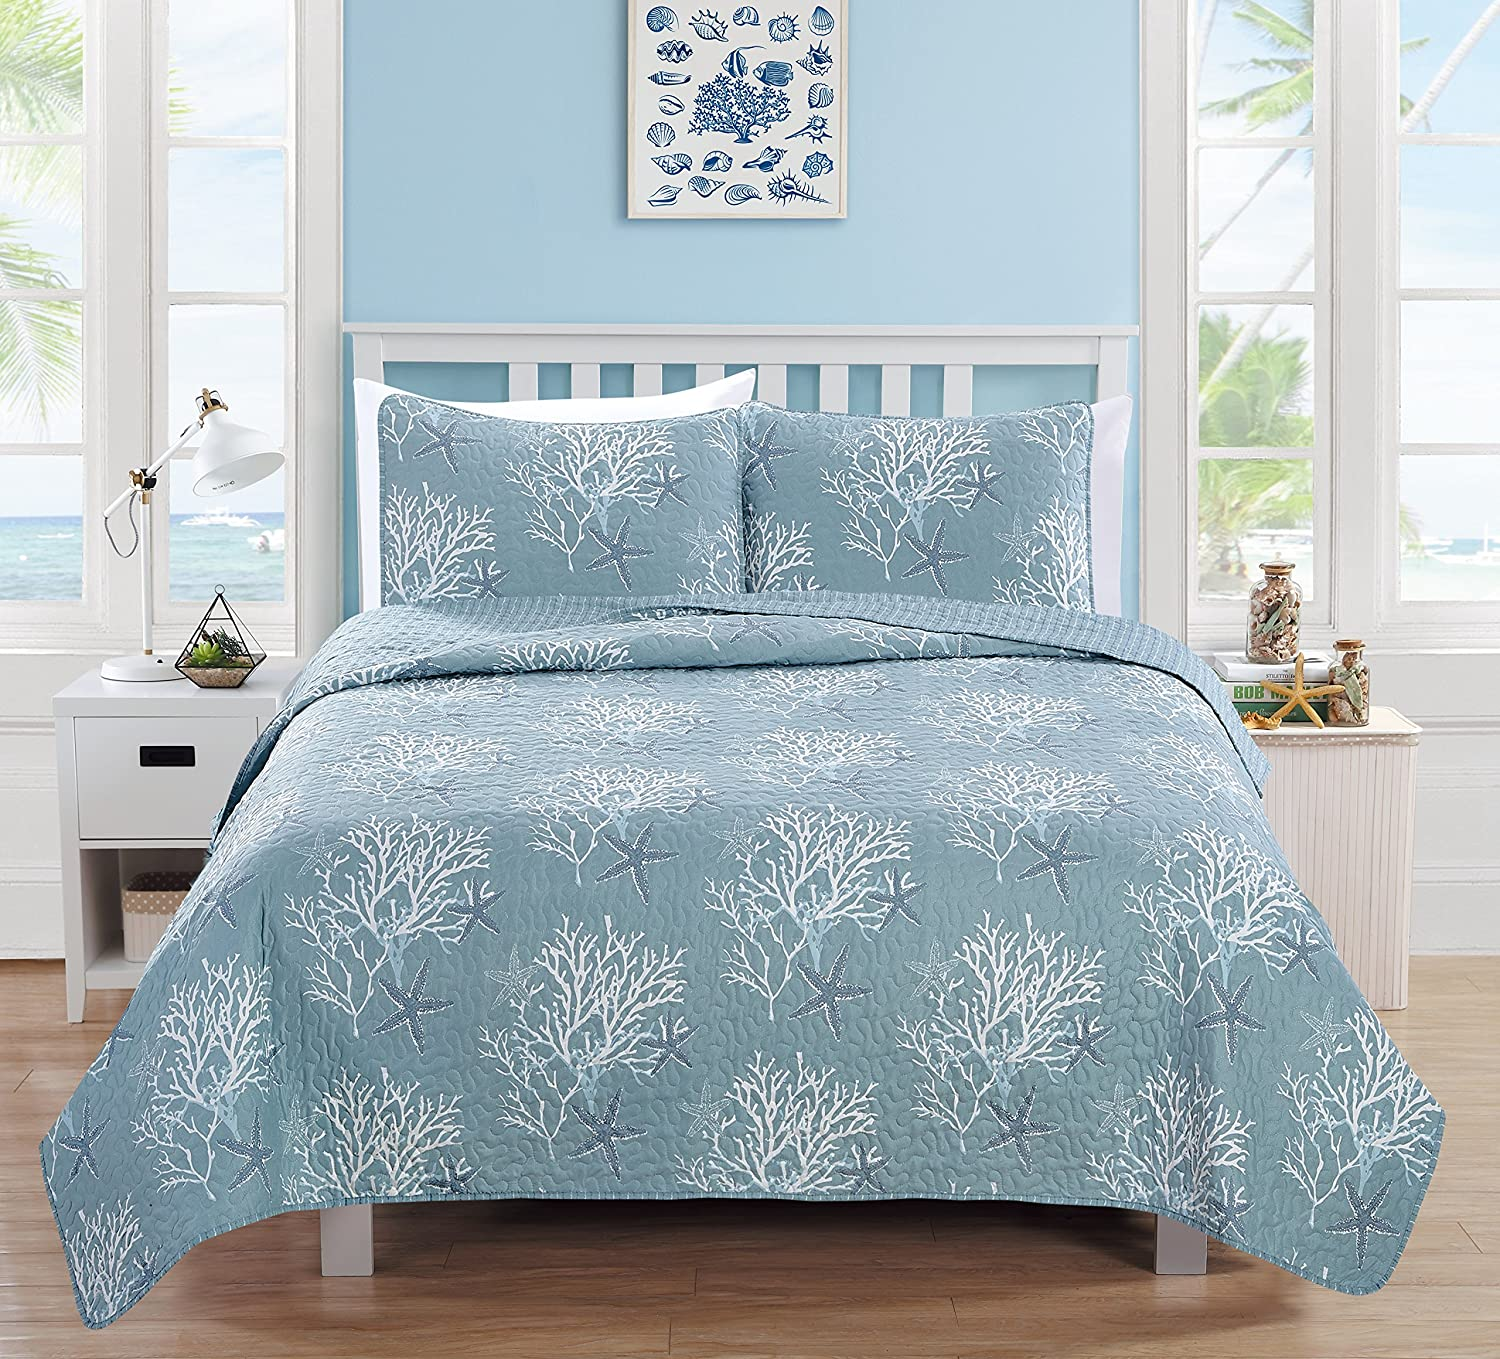 Home Fashion Designs 3-Piece Coastal Beach Theme Quilt Set with Shams. Soft All-Season Luxury Microfiber Reversible Bedspread and Coverlet. Fenwick Collection Brand. (Full/Queen, Ether Blue